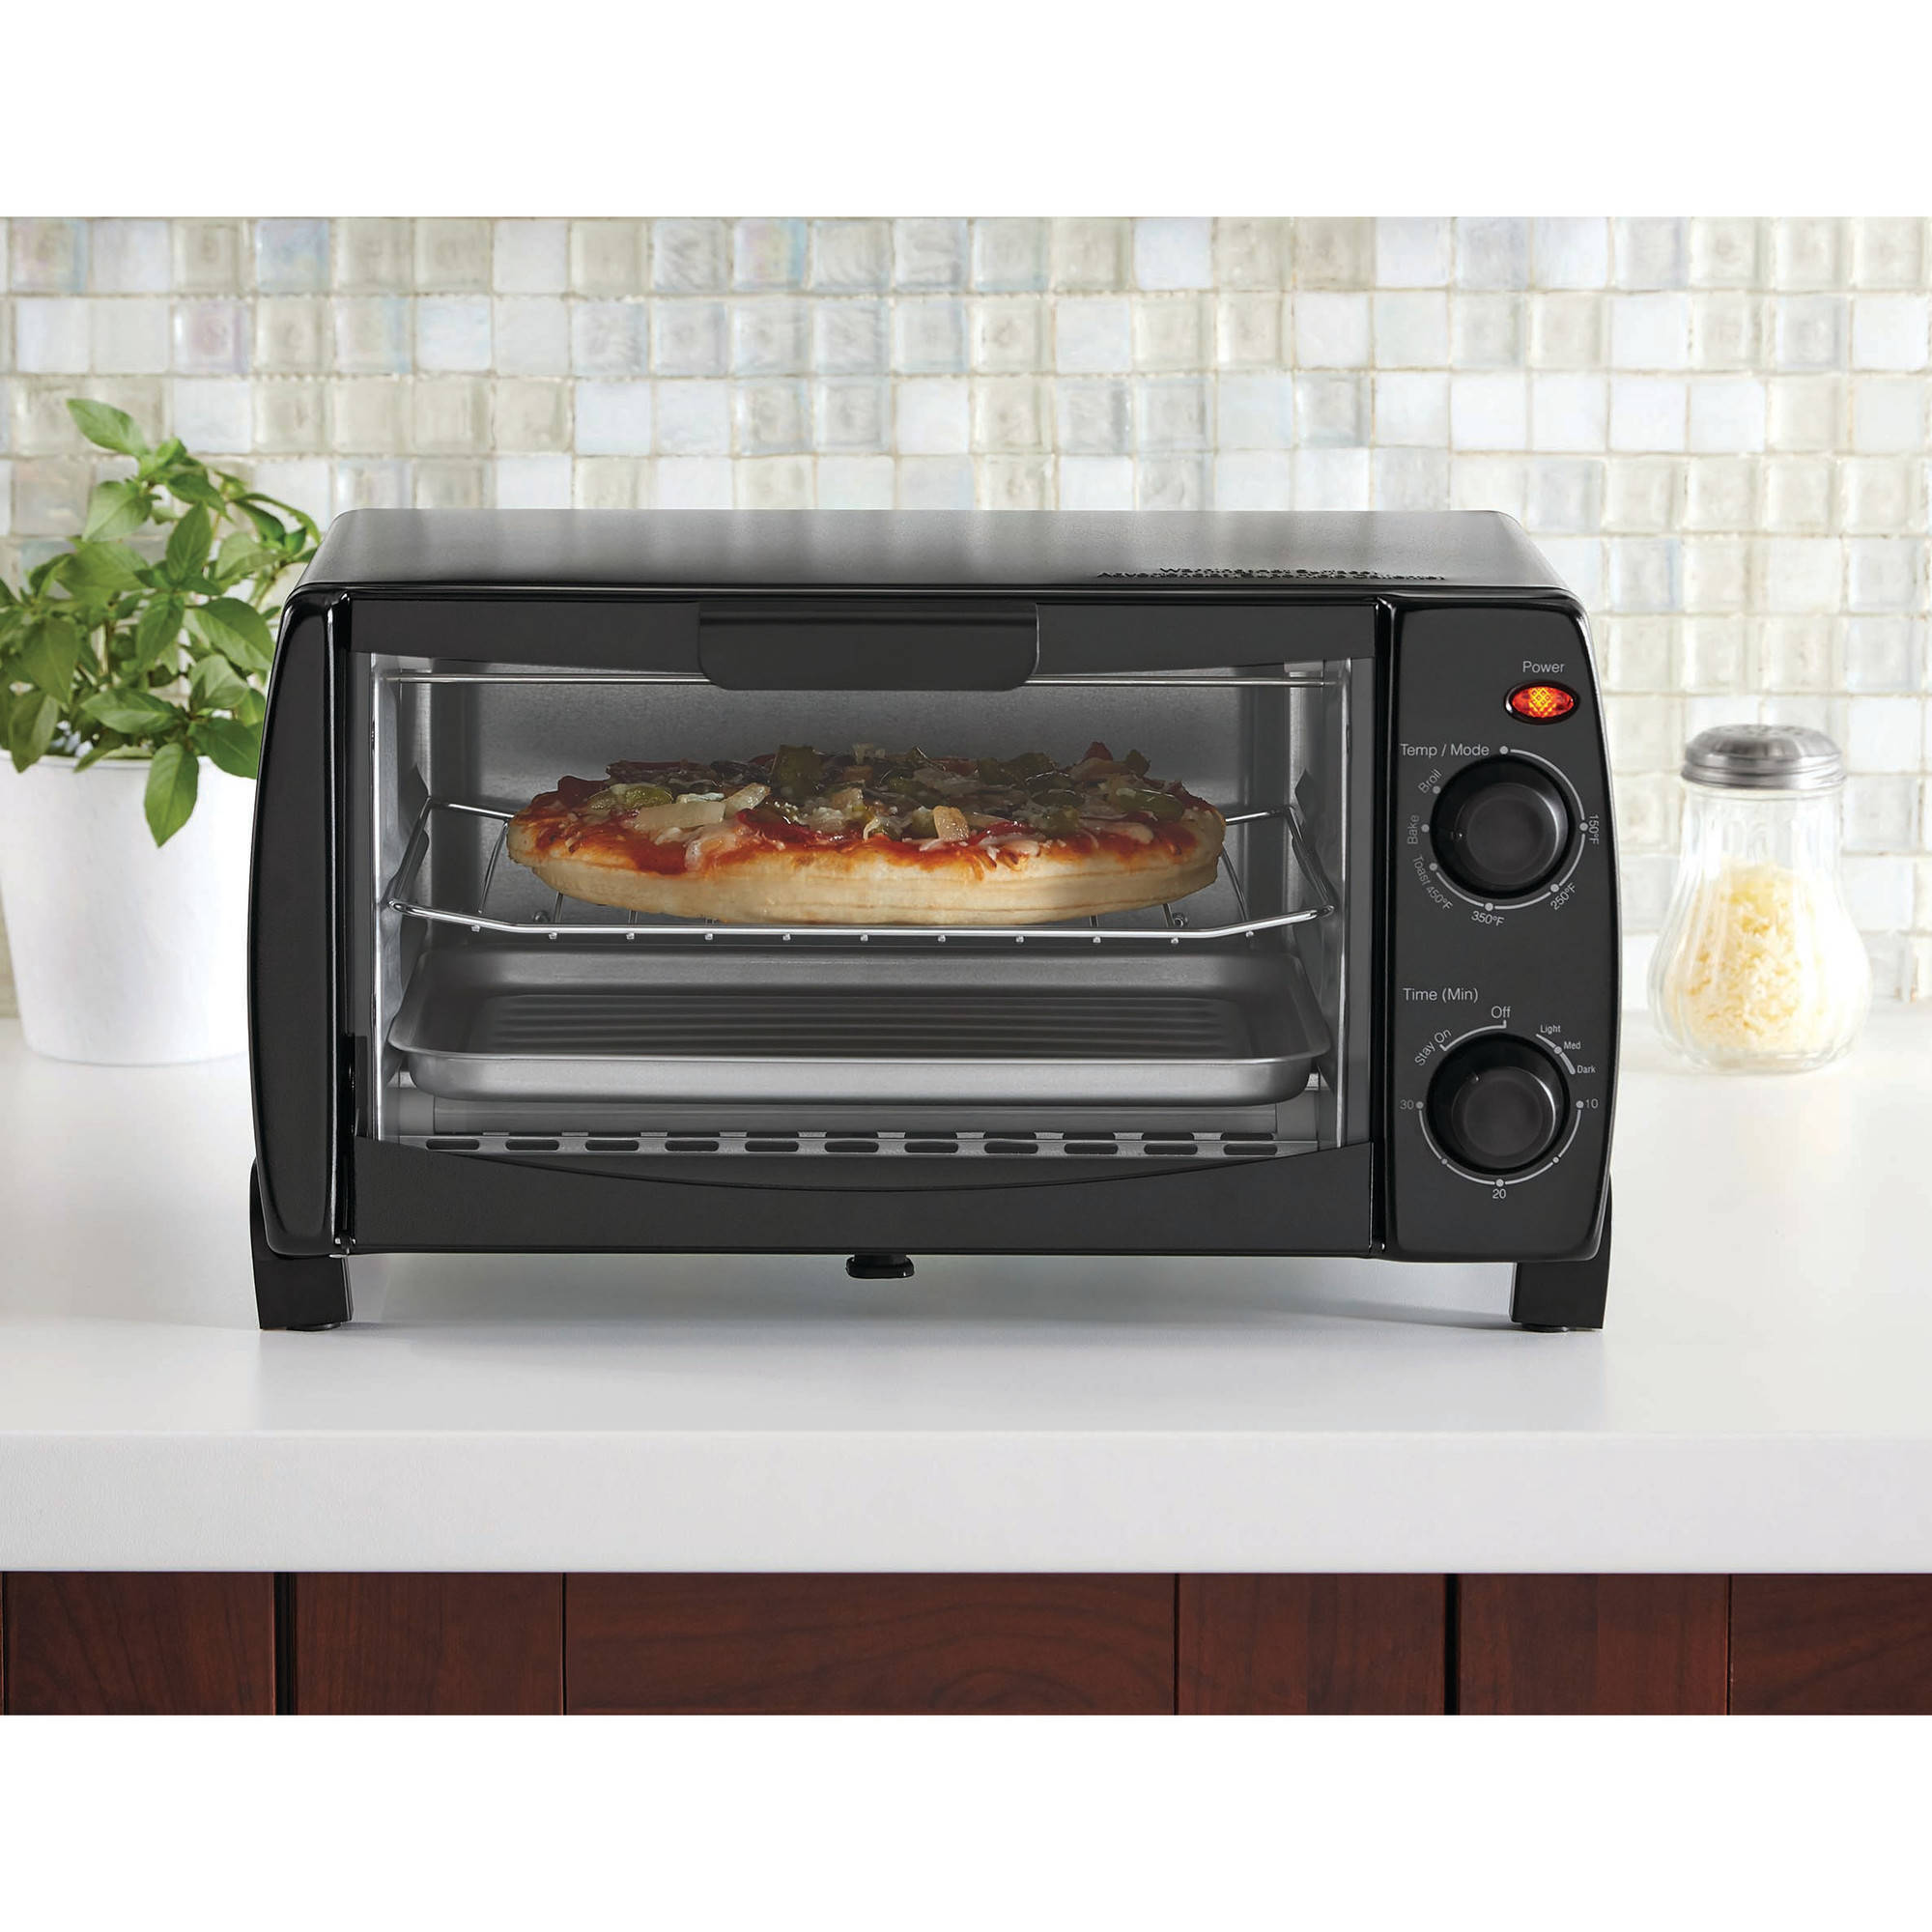 Mainstays 4-Slice Toaster Oven, Black